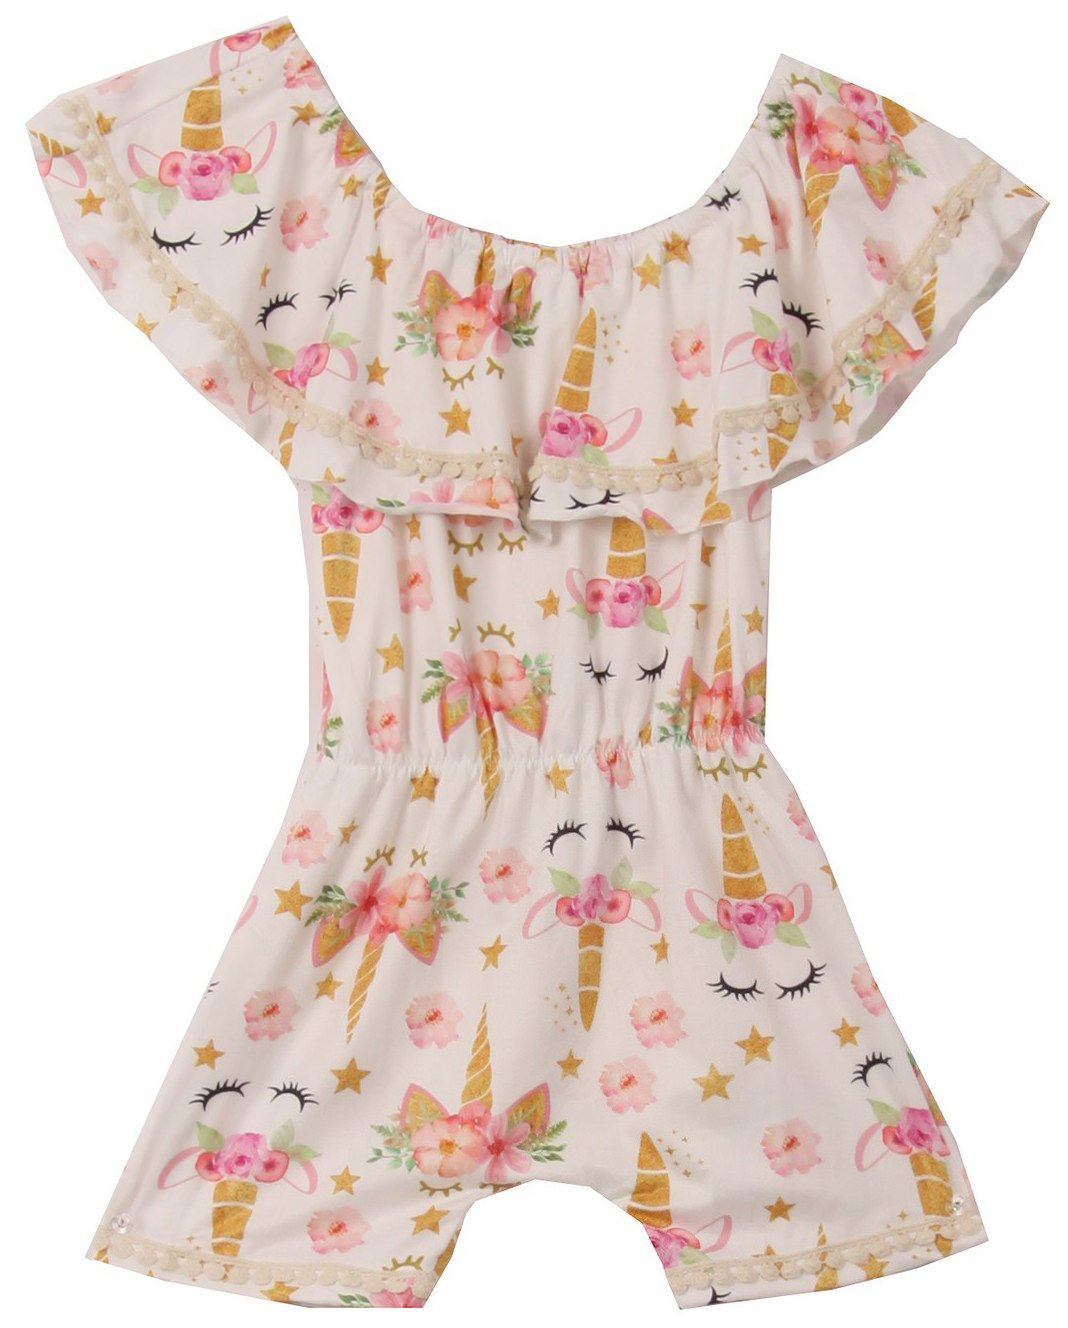 Little Girls' Floral Unicorn Off Shoulder Birthday Party Romper Clothing Gold 5 L (R301-04)